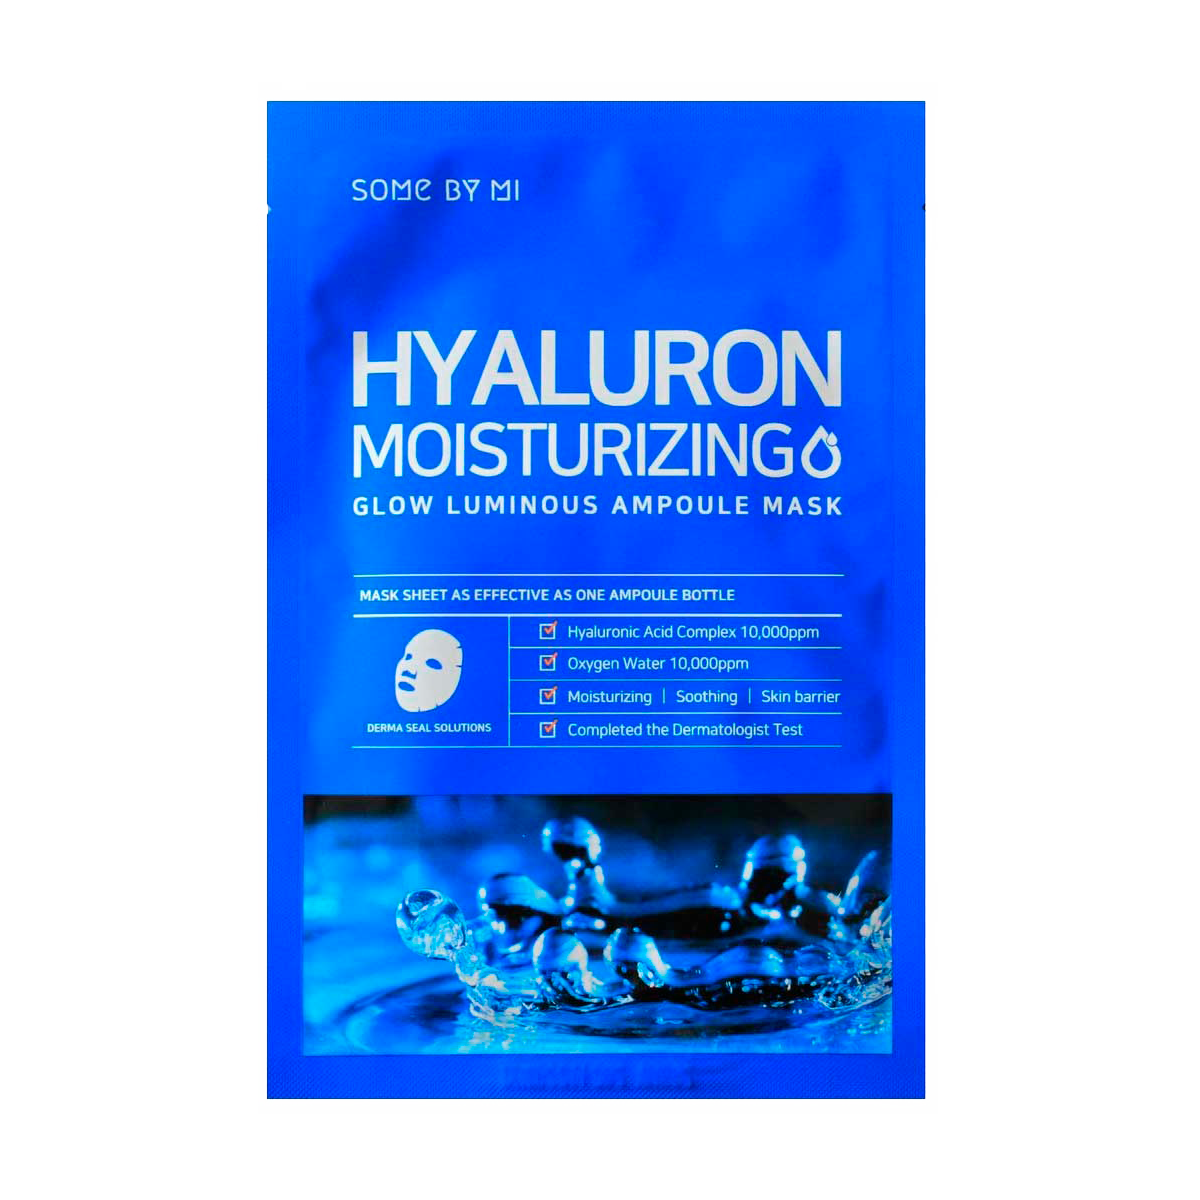 Some By Mi - Hyaluron Moisturizing Ampoule Sheet Mask 1